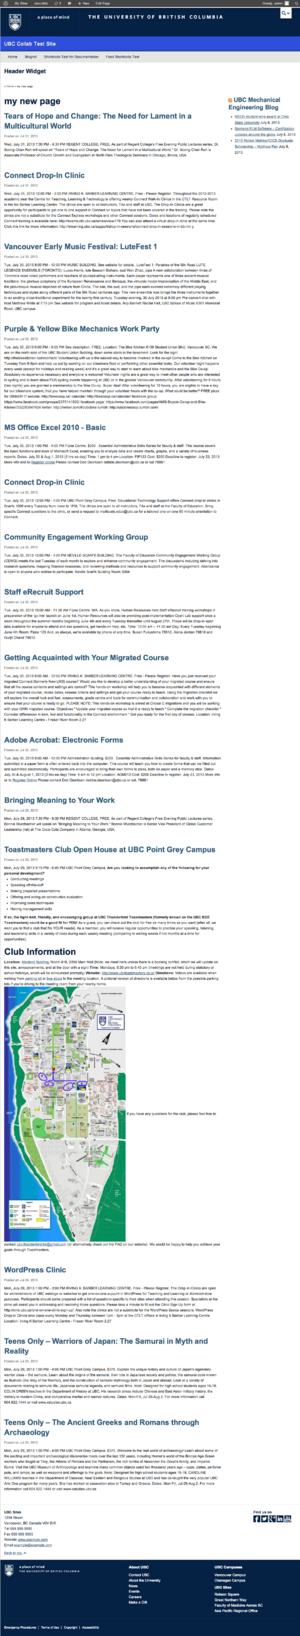 Ubc-collab-feed-shortcode-blog-page.png